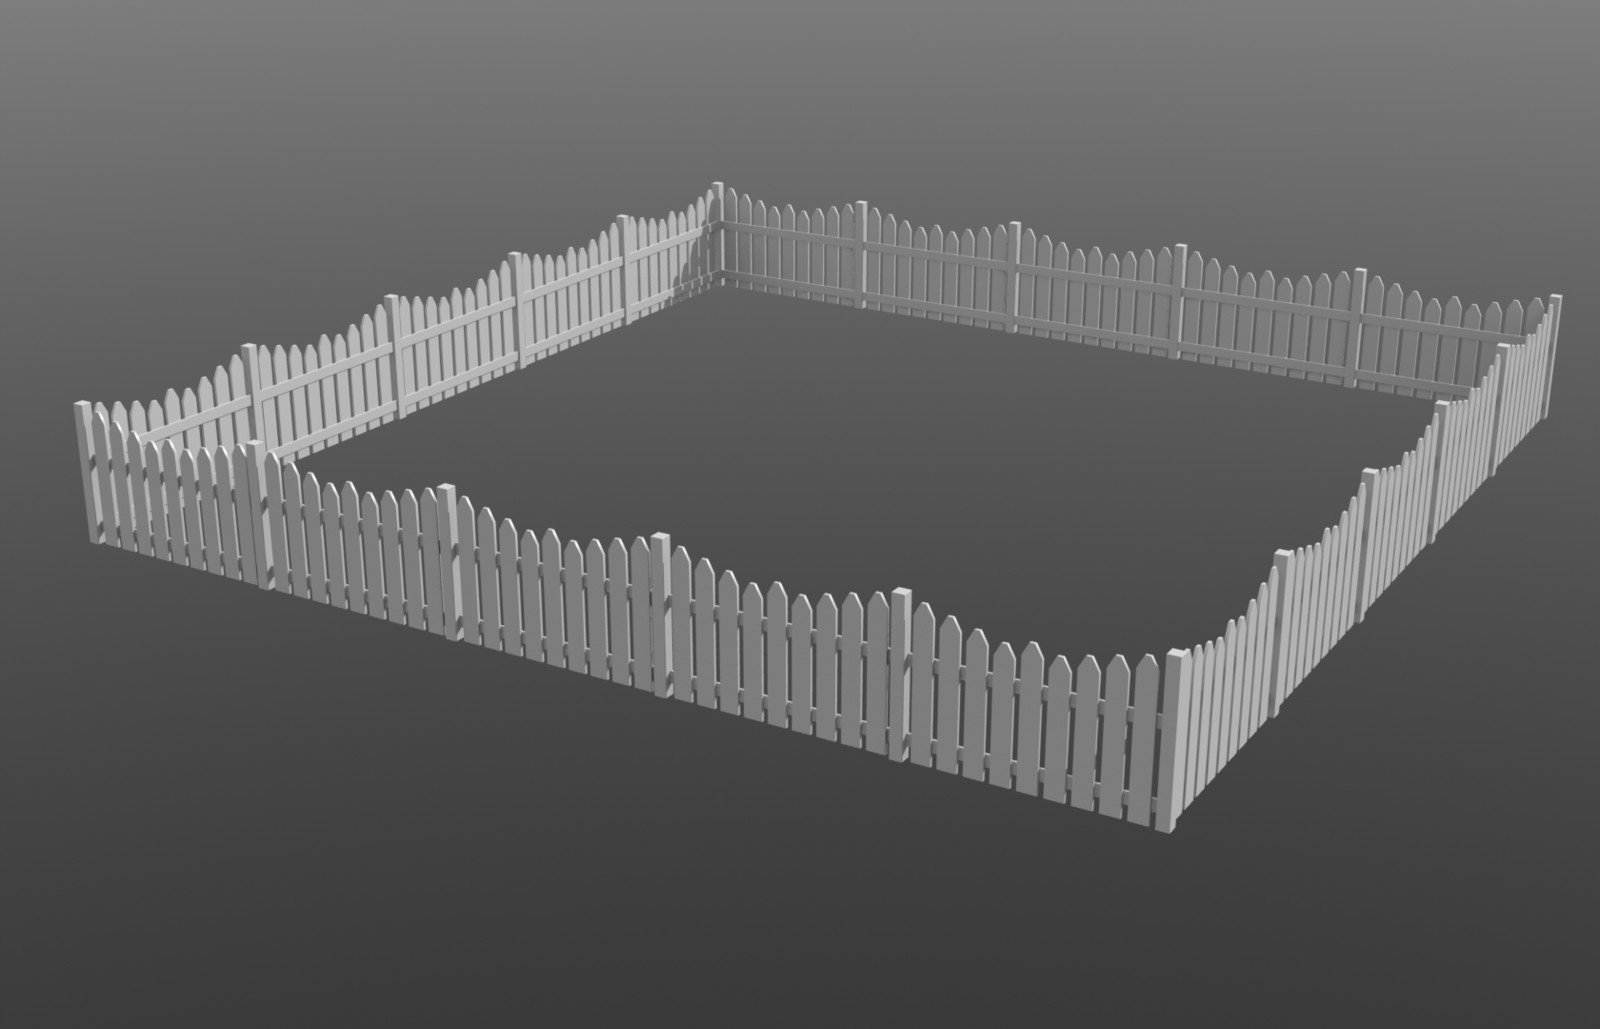 Simple modularity test to see if they fit well together